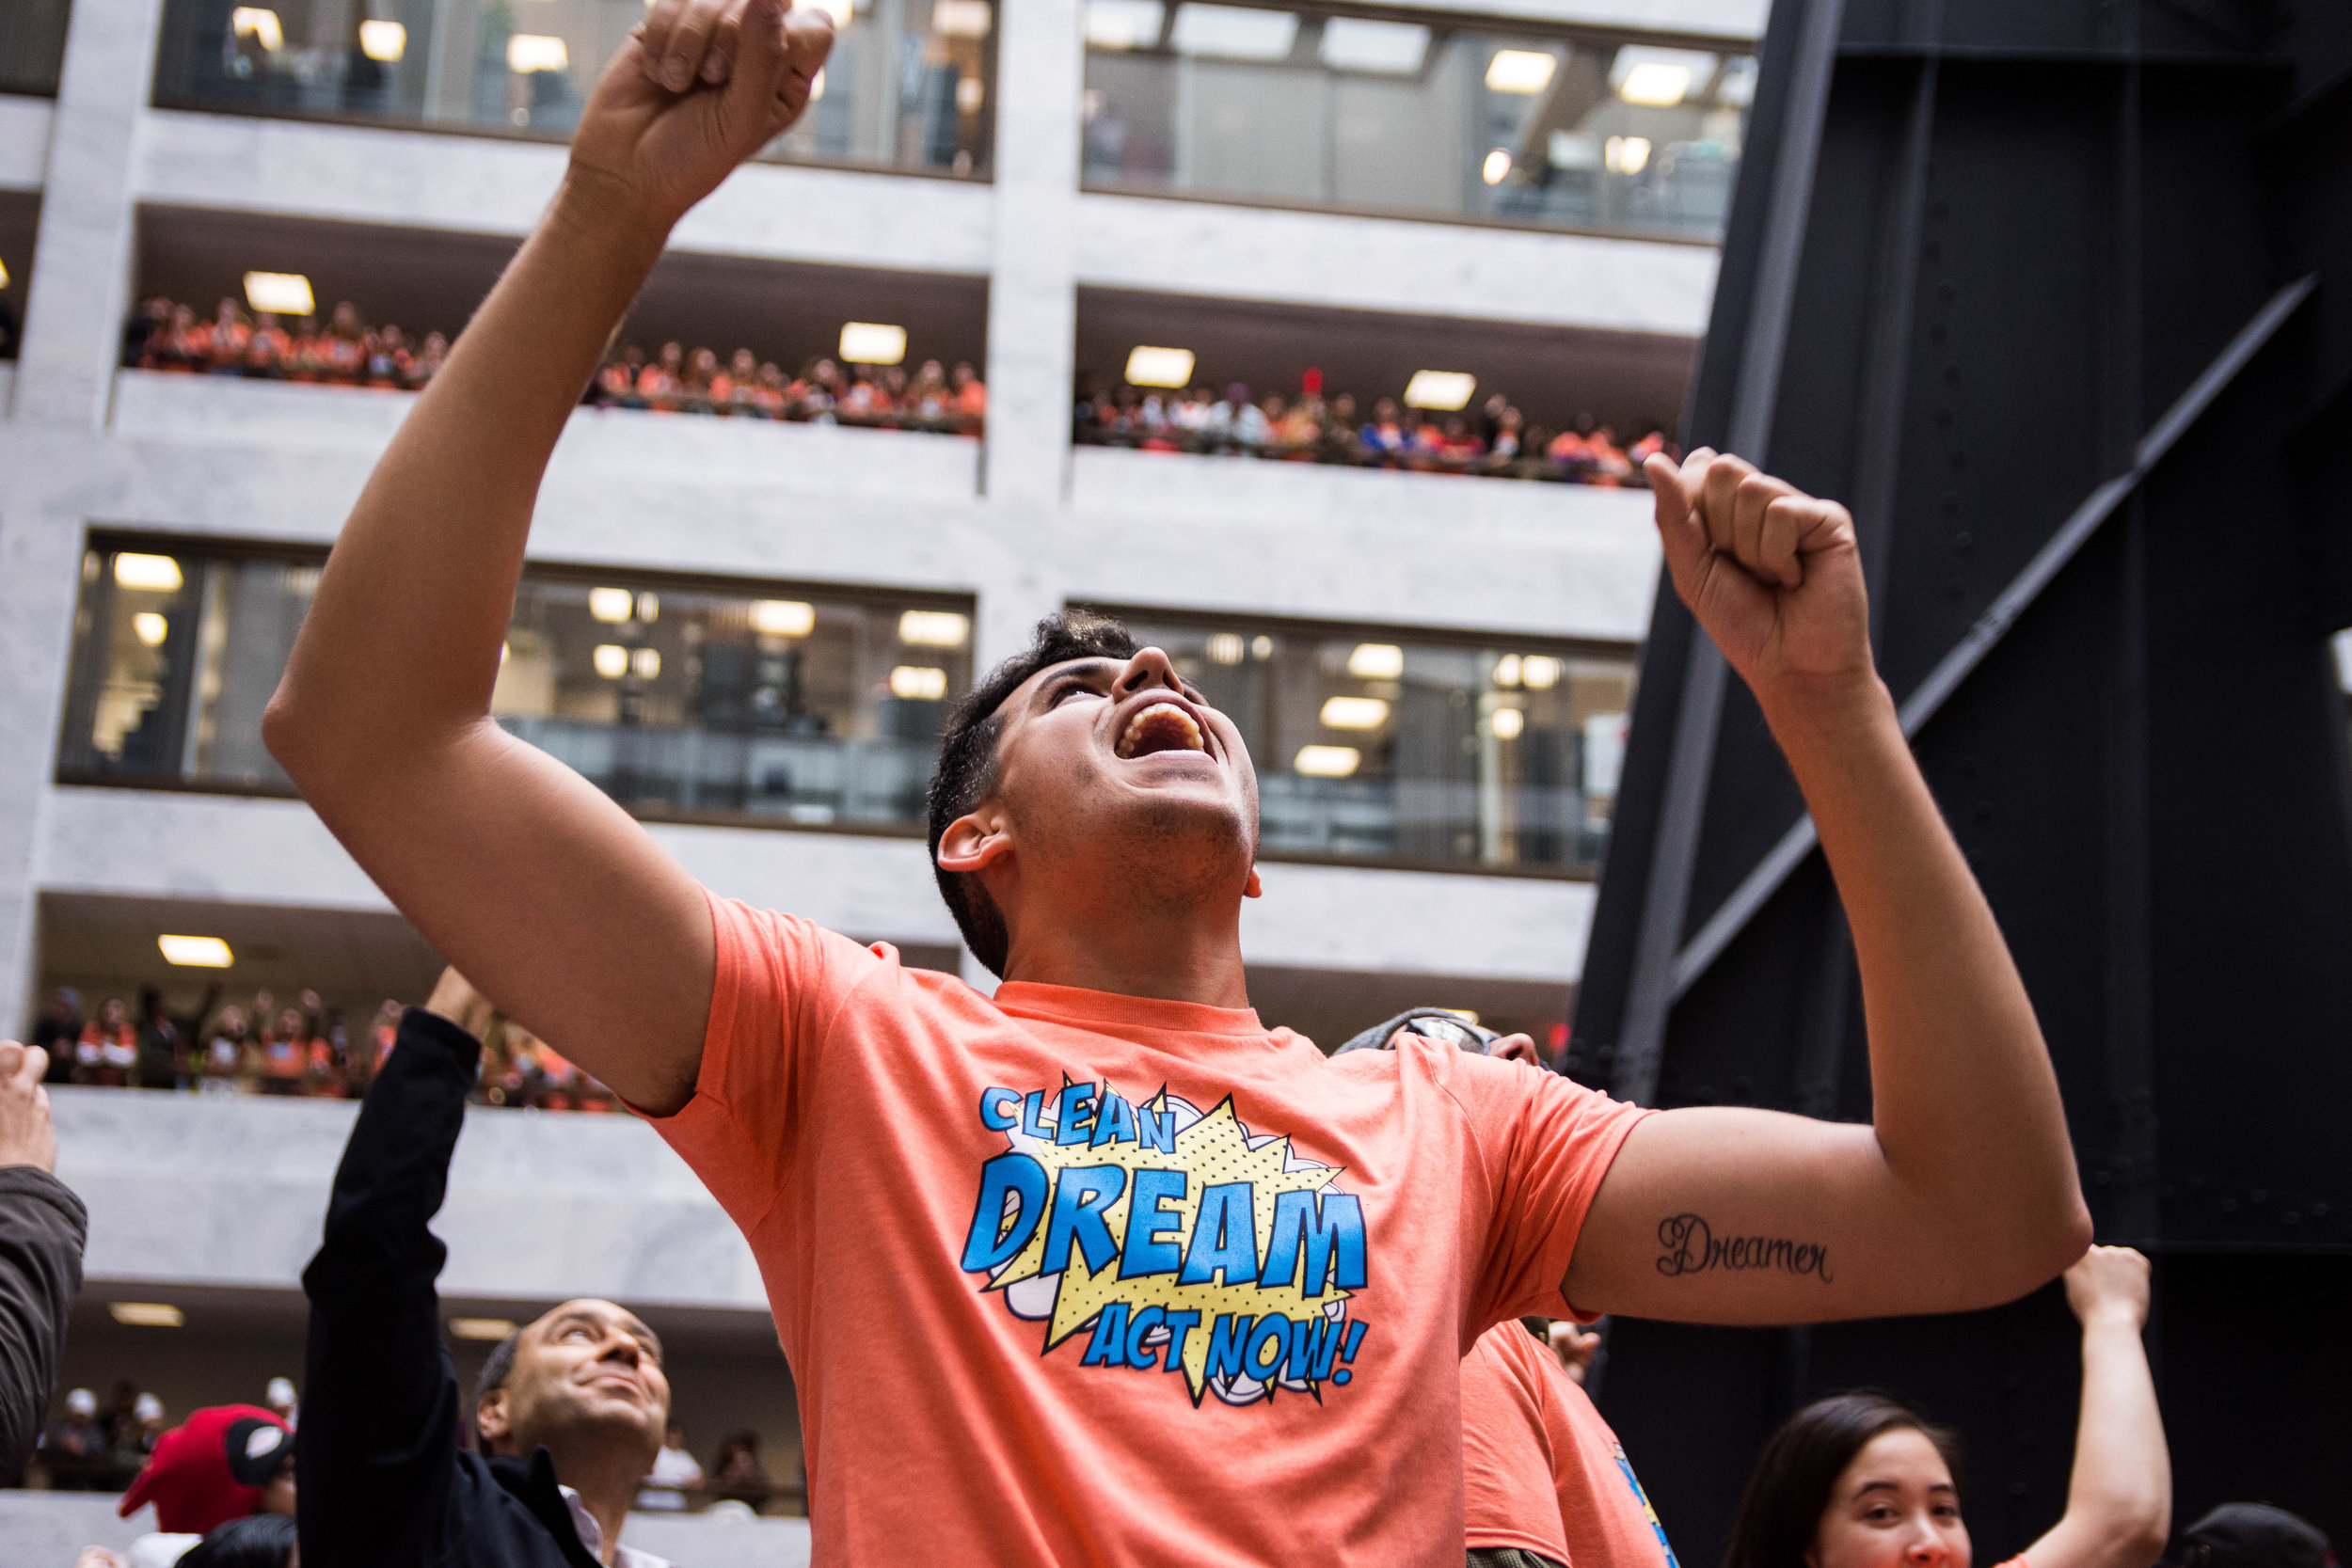 A DREAMer shouts during a protest for a clean DREAM Act inside the Hart Senate Office Building on November 9, 2017. (Alejandro Alvarez / ThinkProgress)